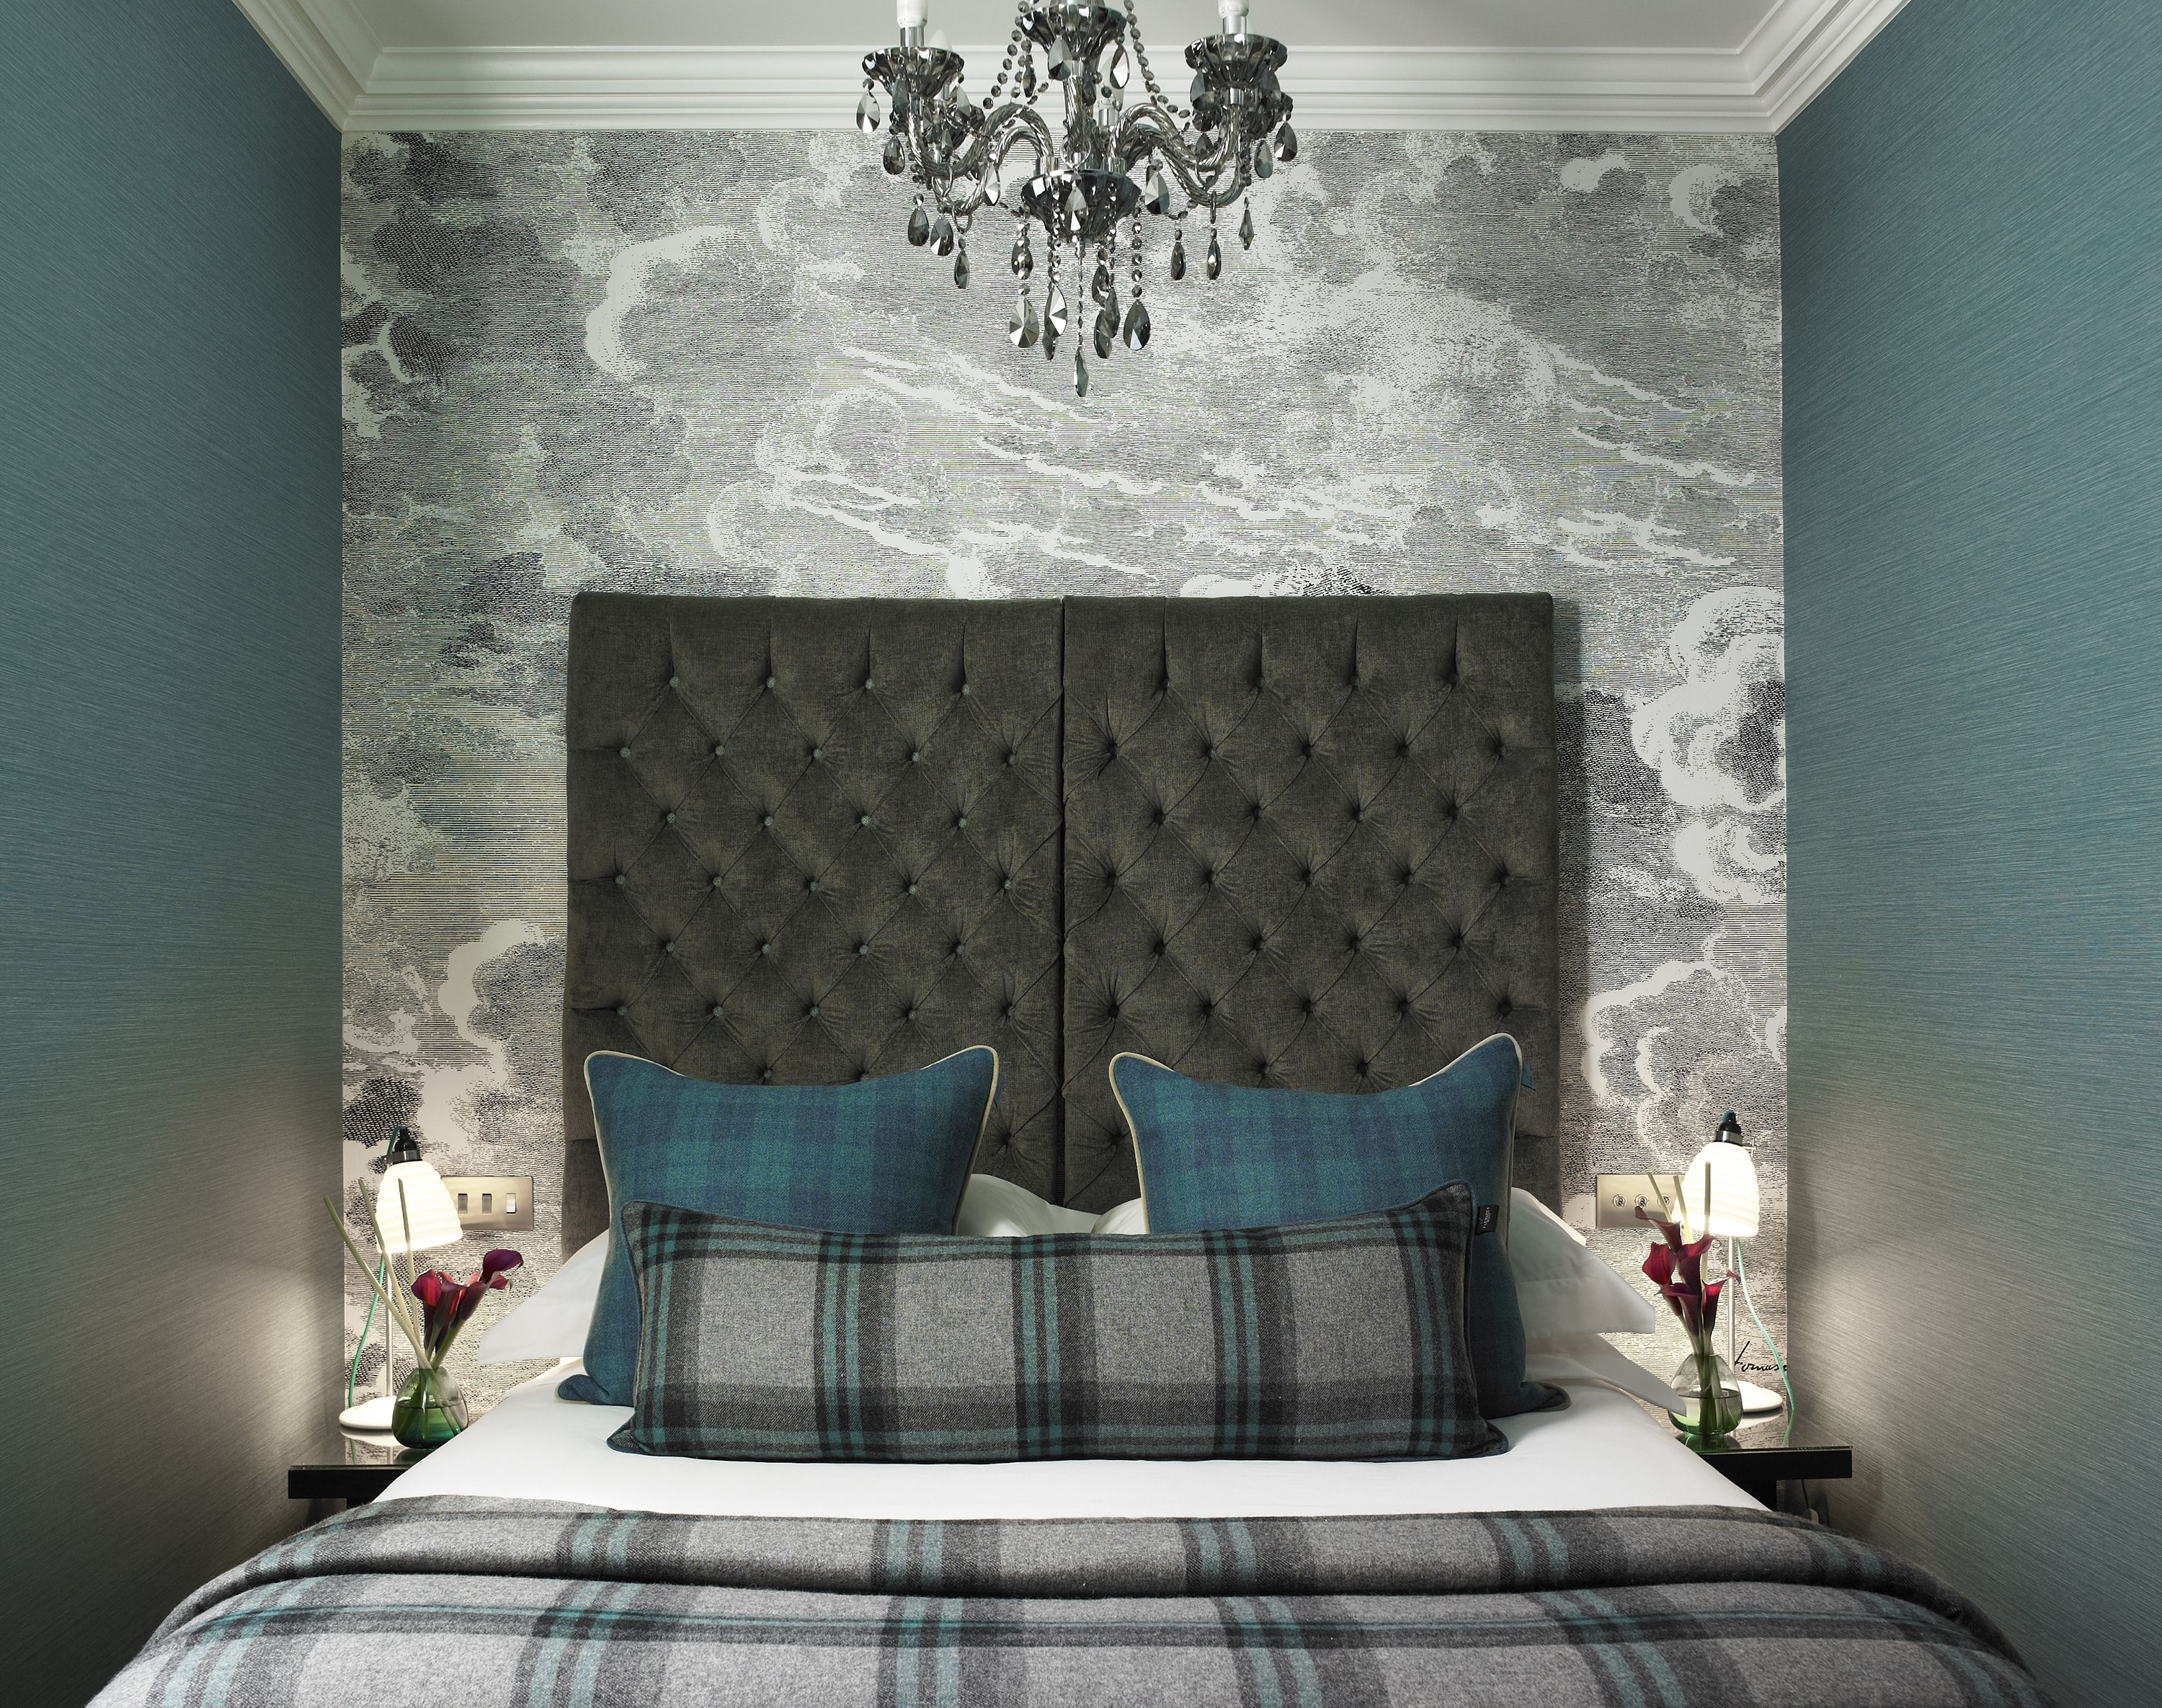 Flemings Mayfair Suites & Apartments Launch Party! #Luxury #Bedroom #Mayfair